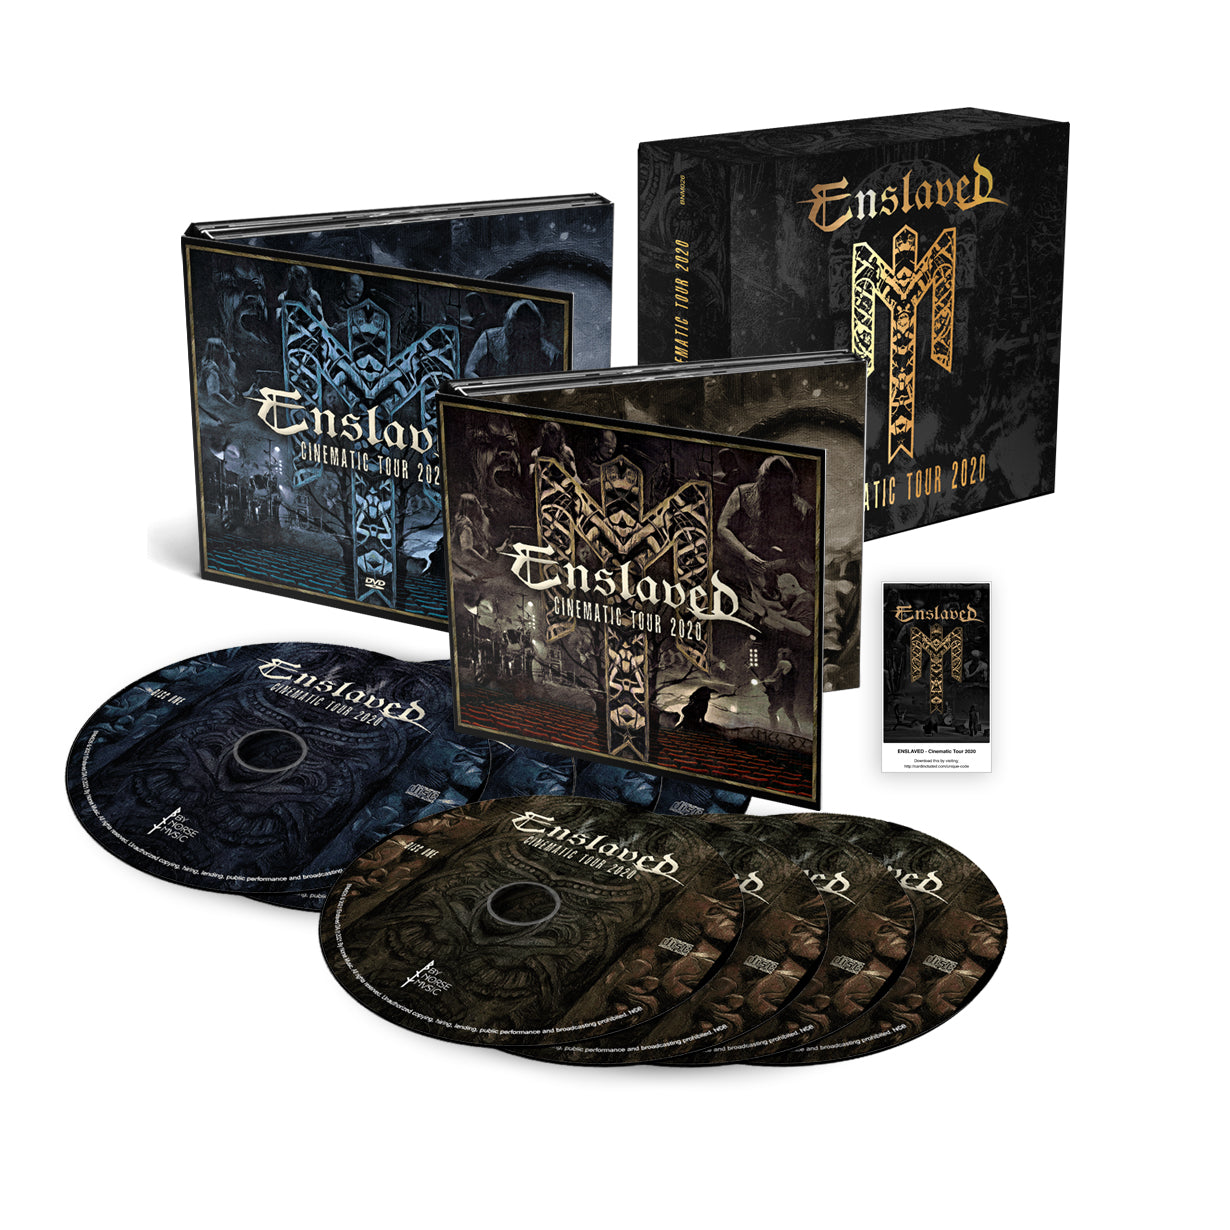 Enslaved - Cinematic Tour 2020 4x CDs + 4x DVDs (PAL) Boxset